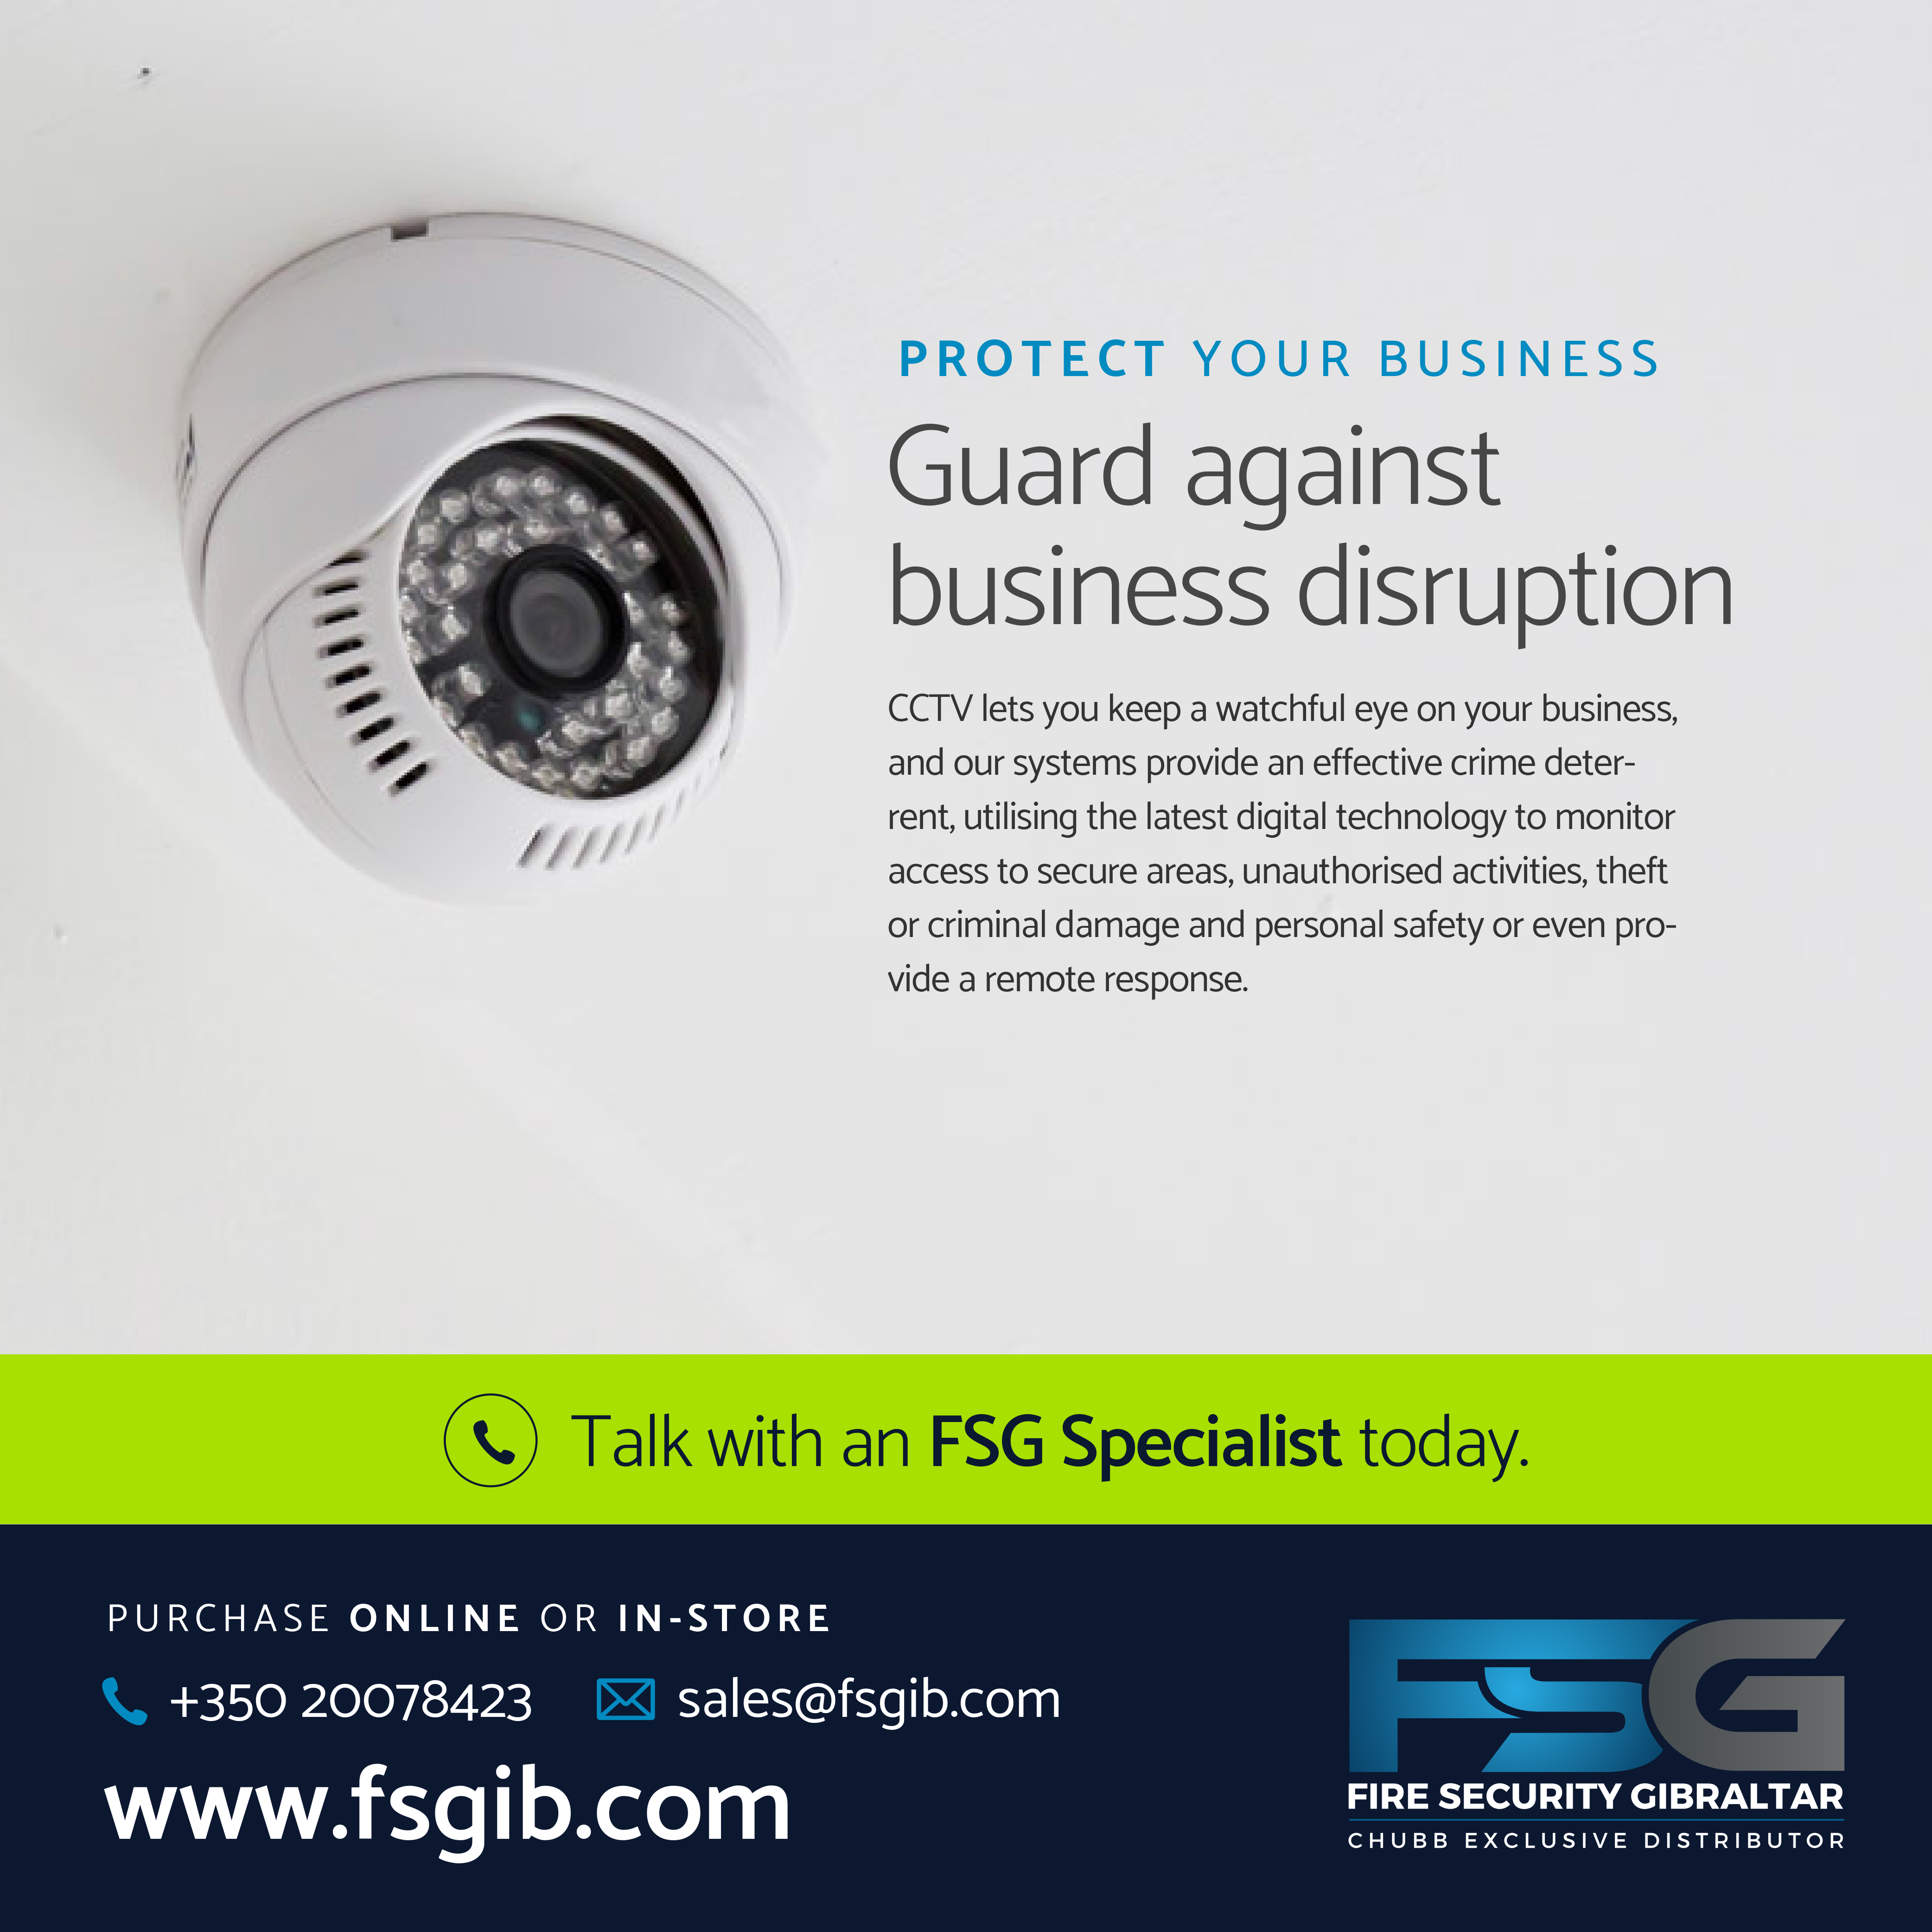 Guard against business disruption